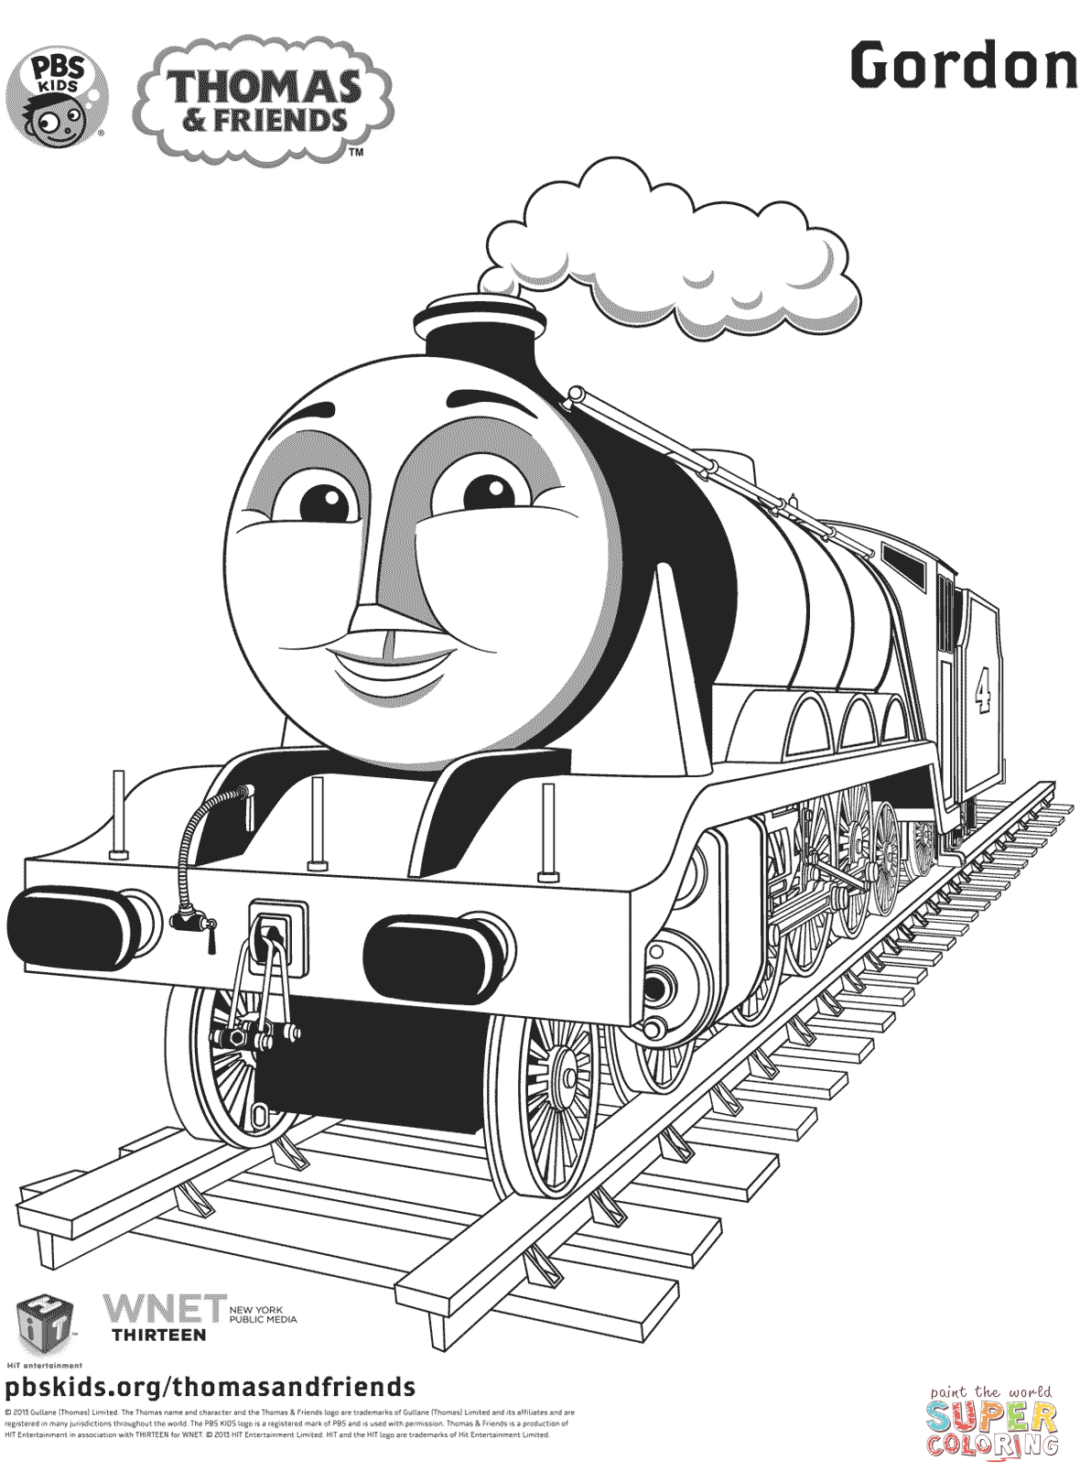 coloring pages of thomas and friends thomas the train coloring pages pdf at getcoloringscom friends thomas coloring of and pages